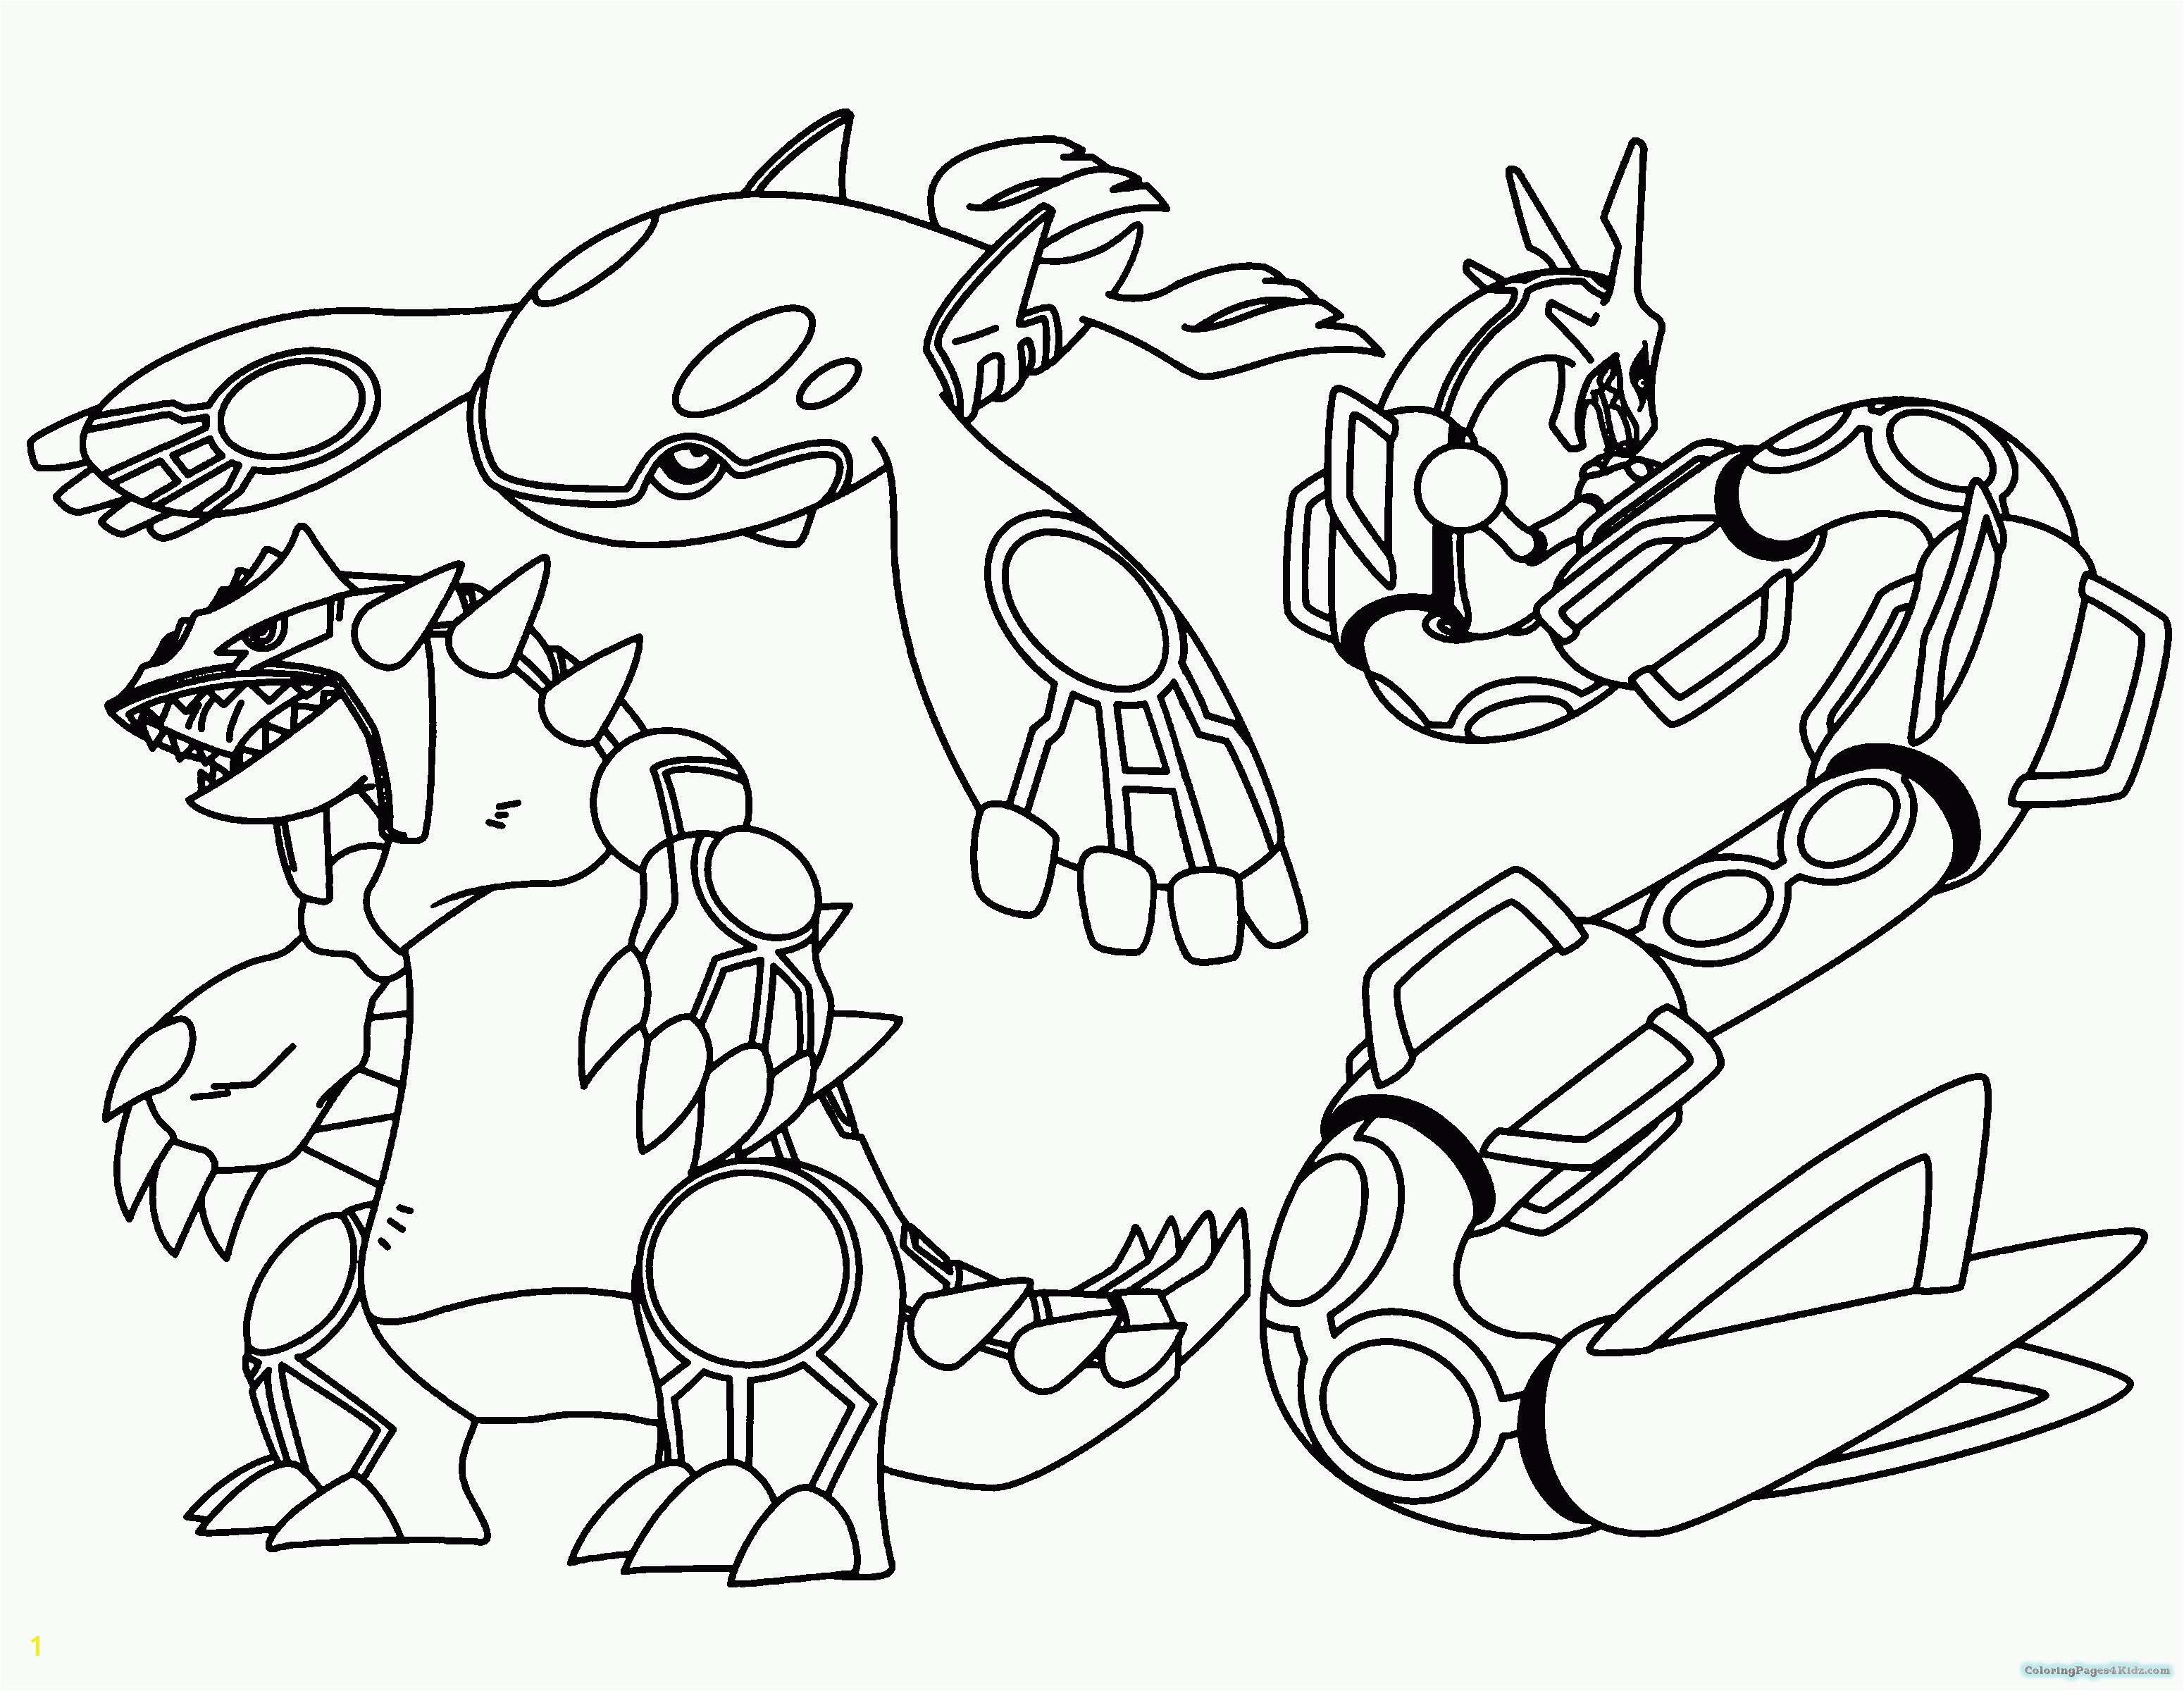 Legendary Pokemon Printable Coloring Pages Printable Pages to Color Valid Mainstream All Legendary Pokemon